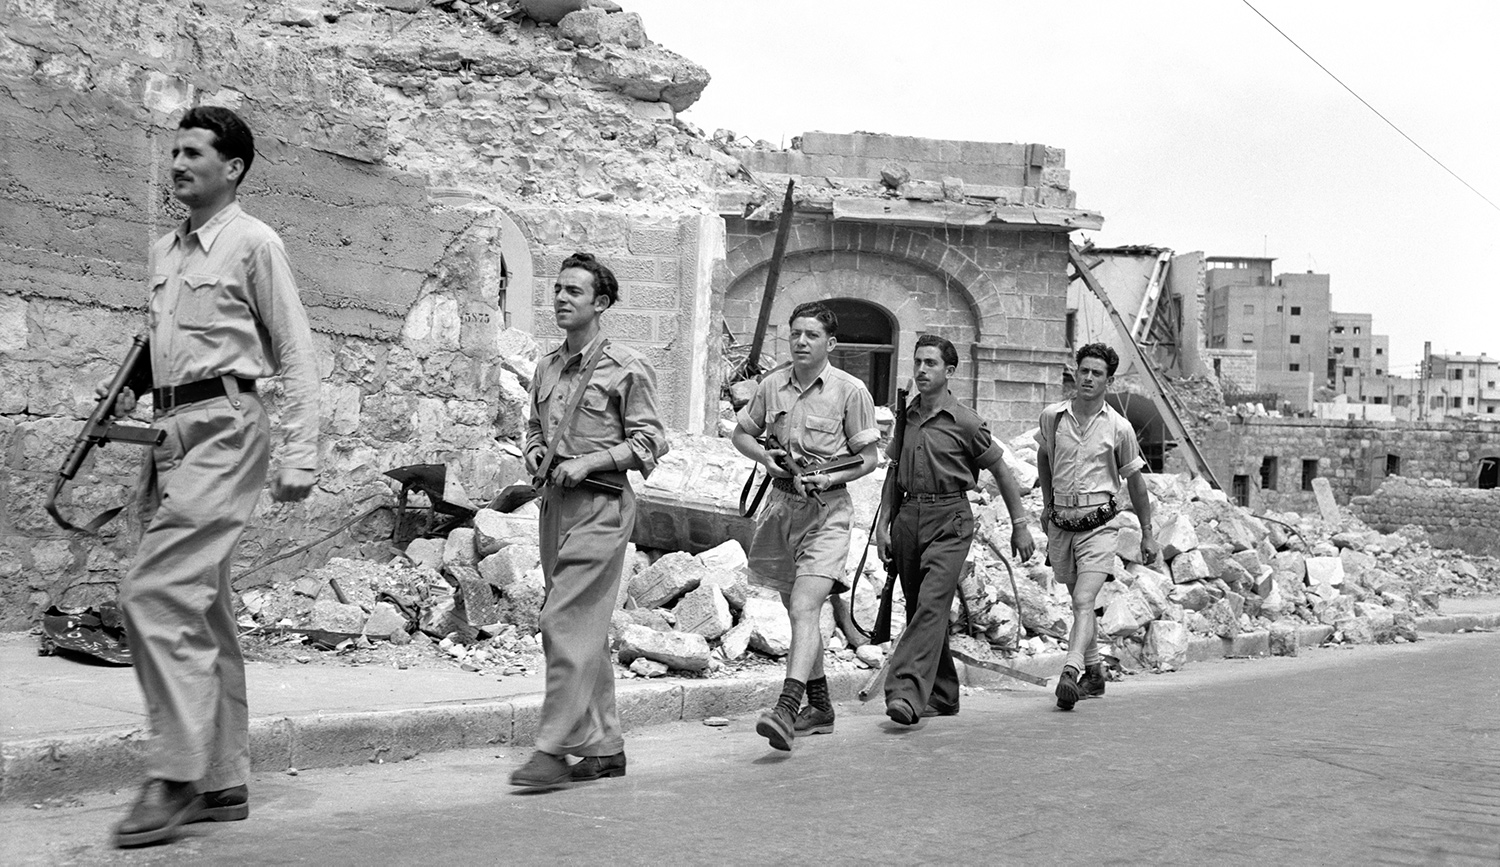 Haganah troops patrolling after the capture of Haifa in 1948. Bettmann via Getty.